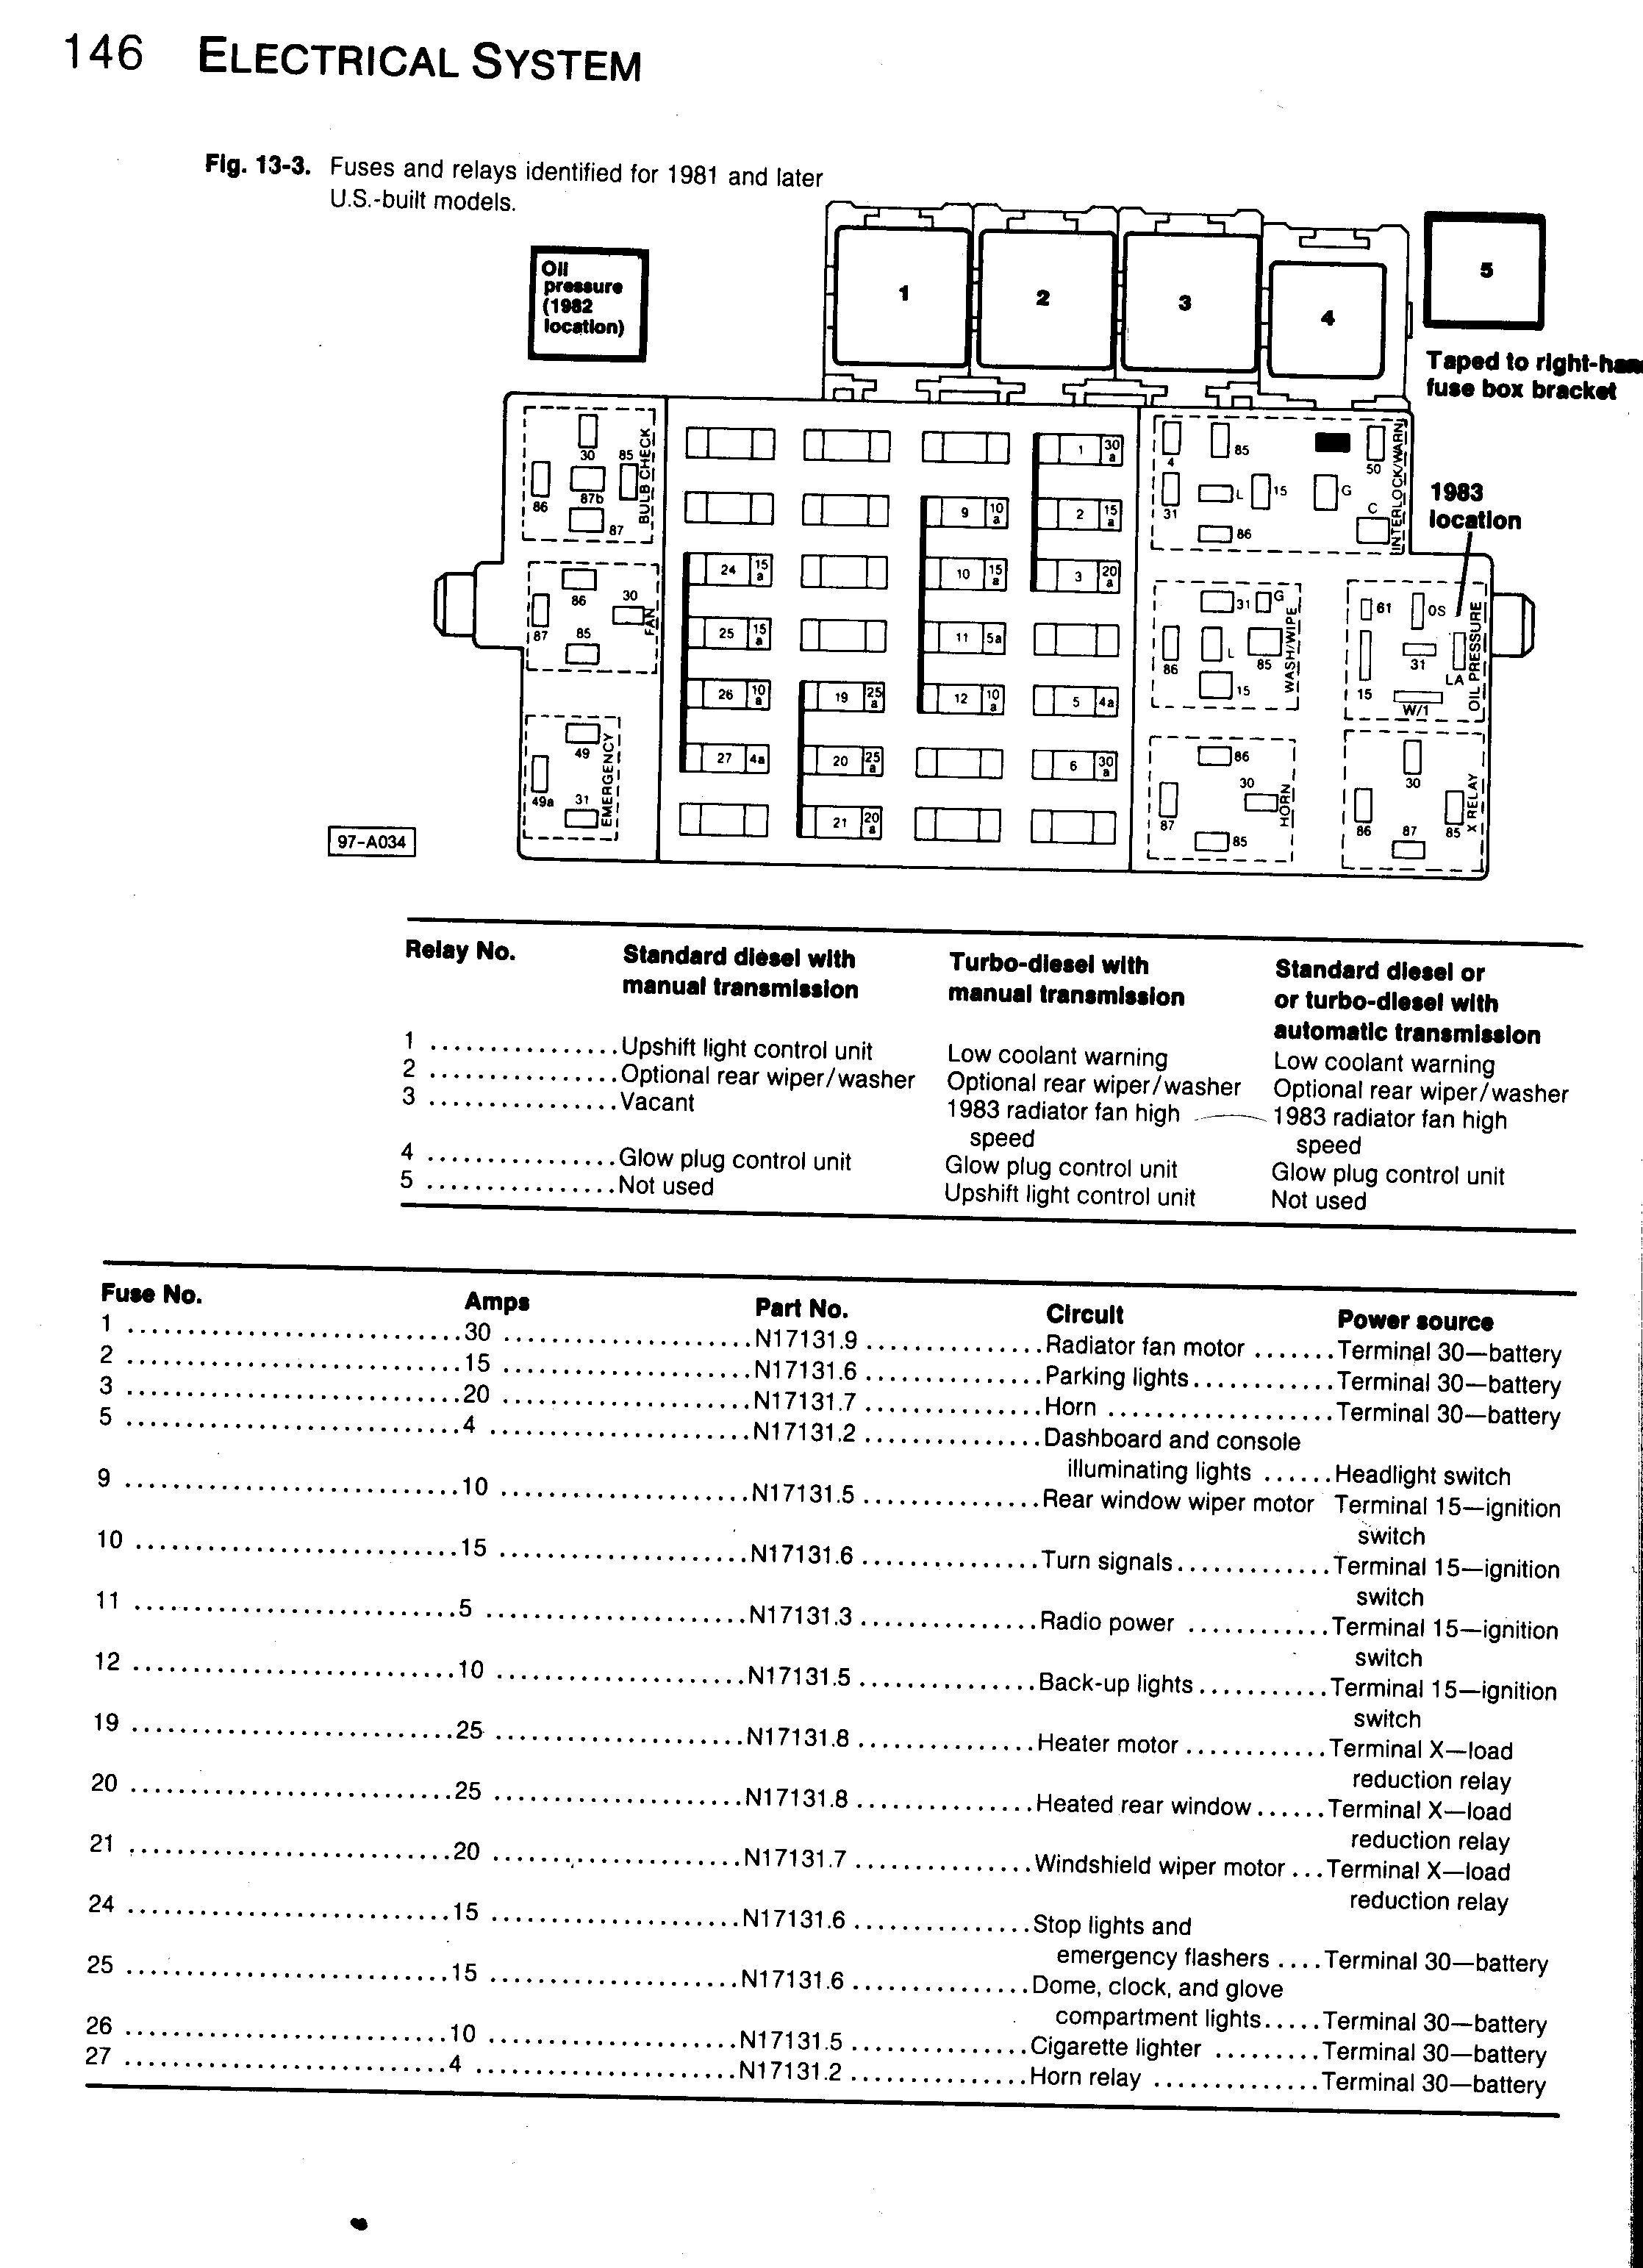 2002 volkswagen cabrio fuse diagram electrical diagram schematics rh landingchurchseattle com 2001 vw jetta fuse box diagram 2001 jetta 1.8t fuse box diagram